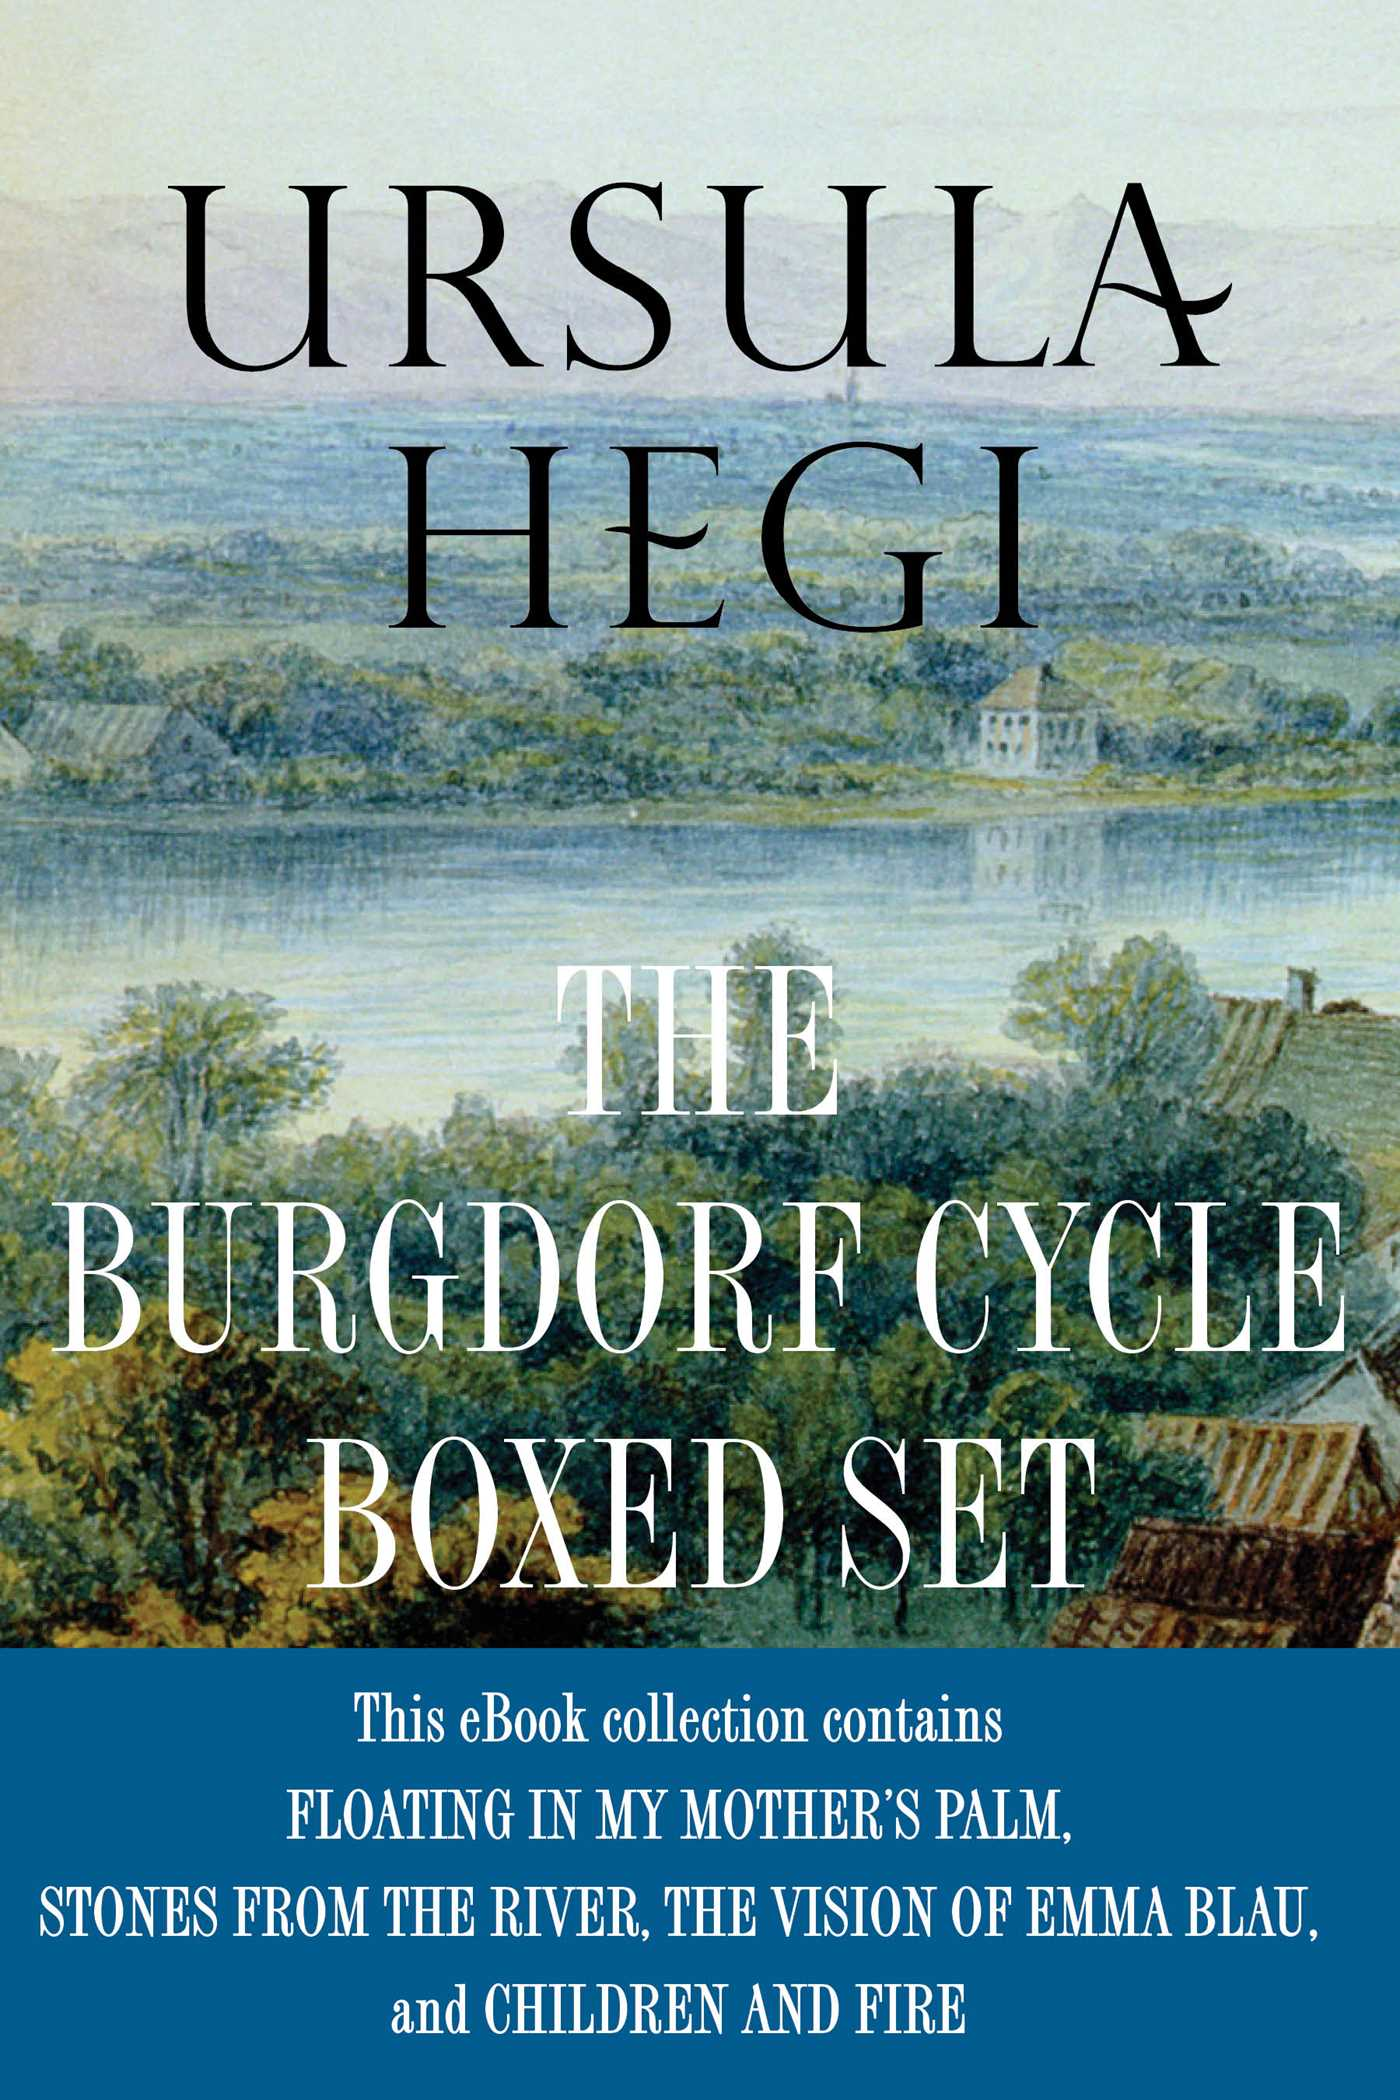 Ursula hegi the burgdorf cycle boxed set 9781451661590 hr